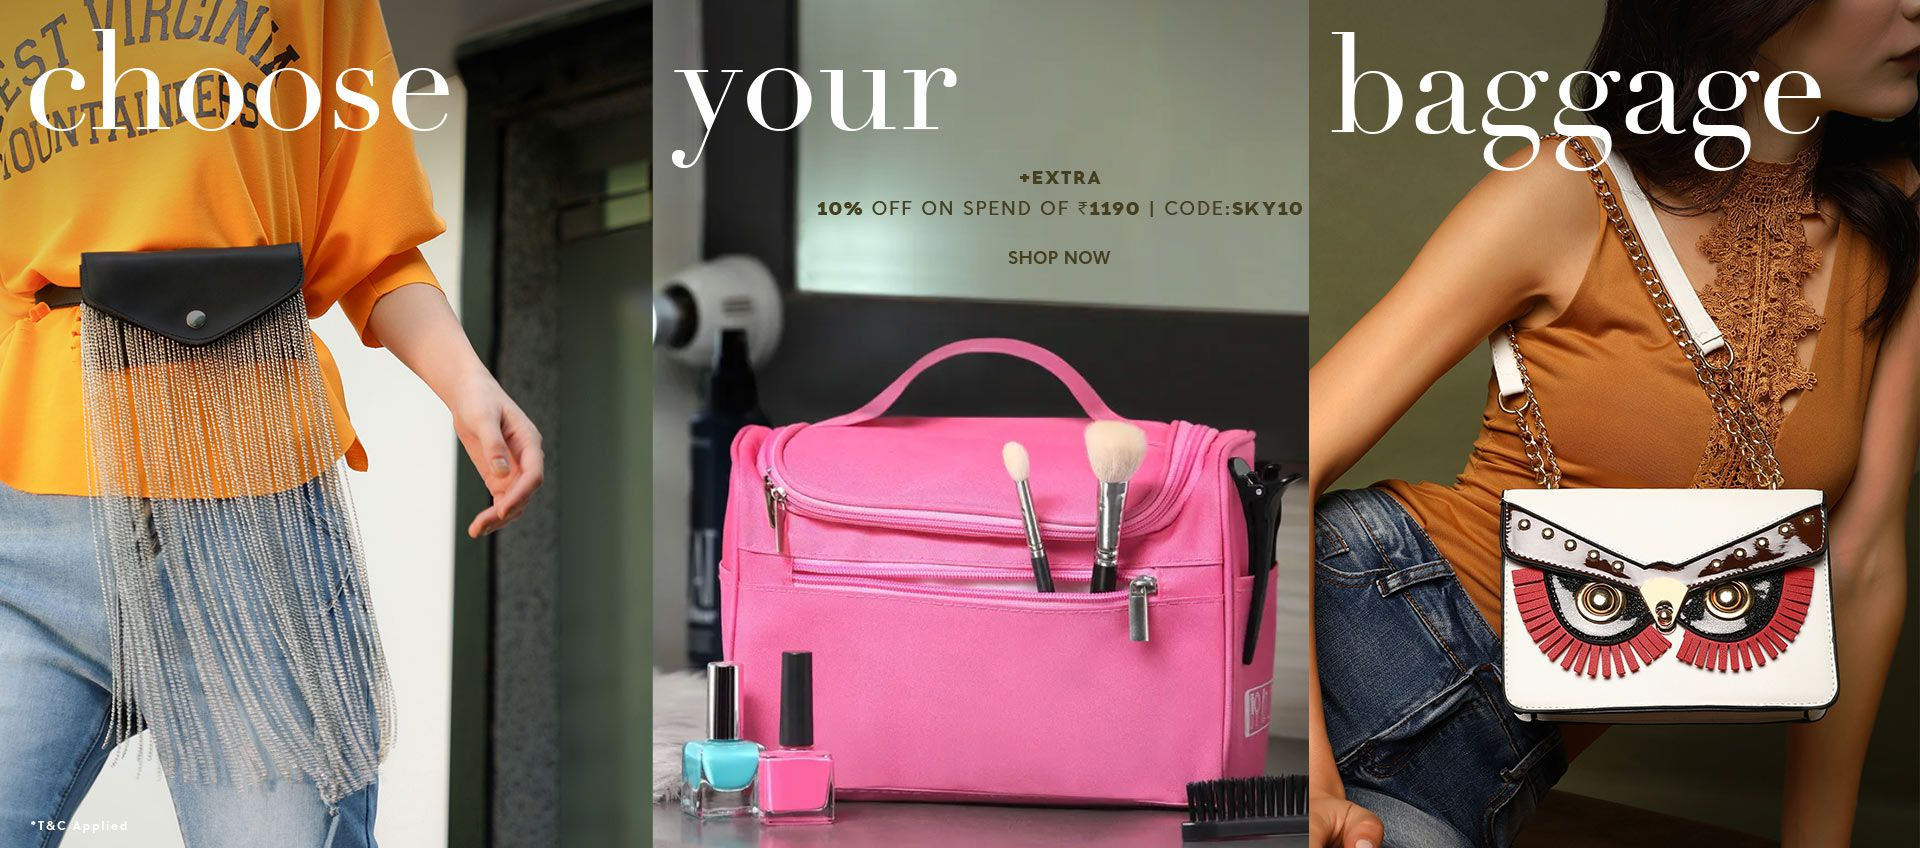 FLAT 80% OFF ON BAGS